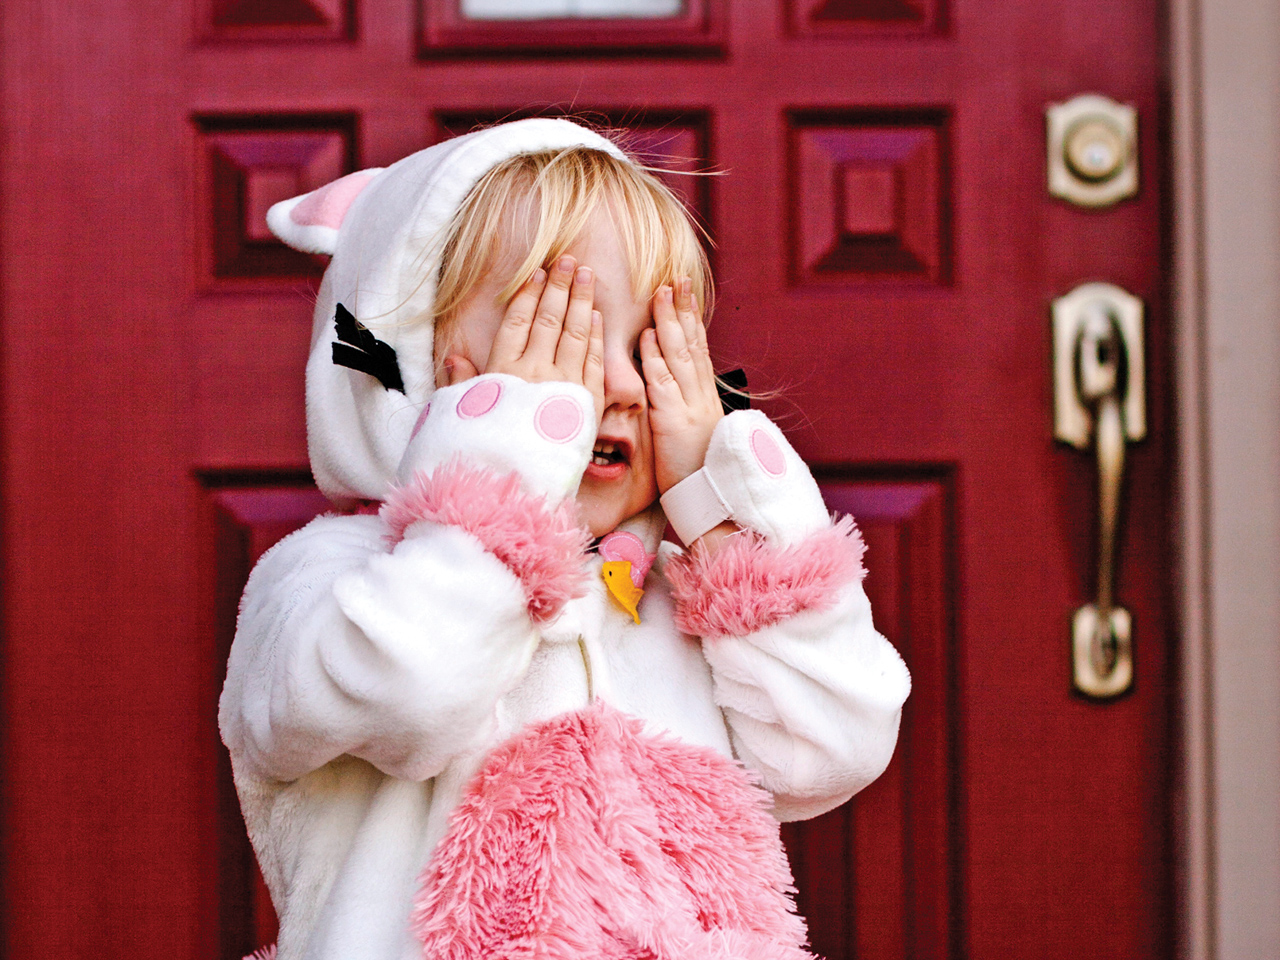 A kid in a cat costume covering her eyes